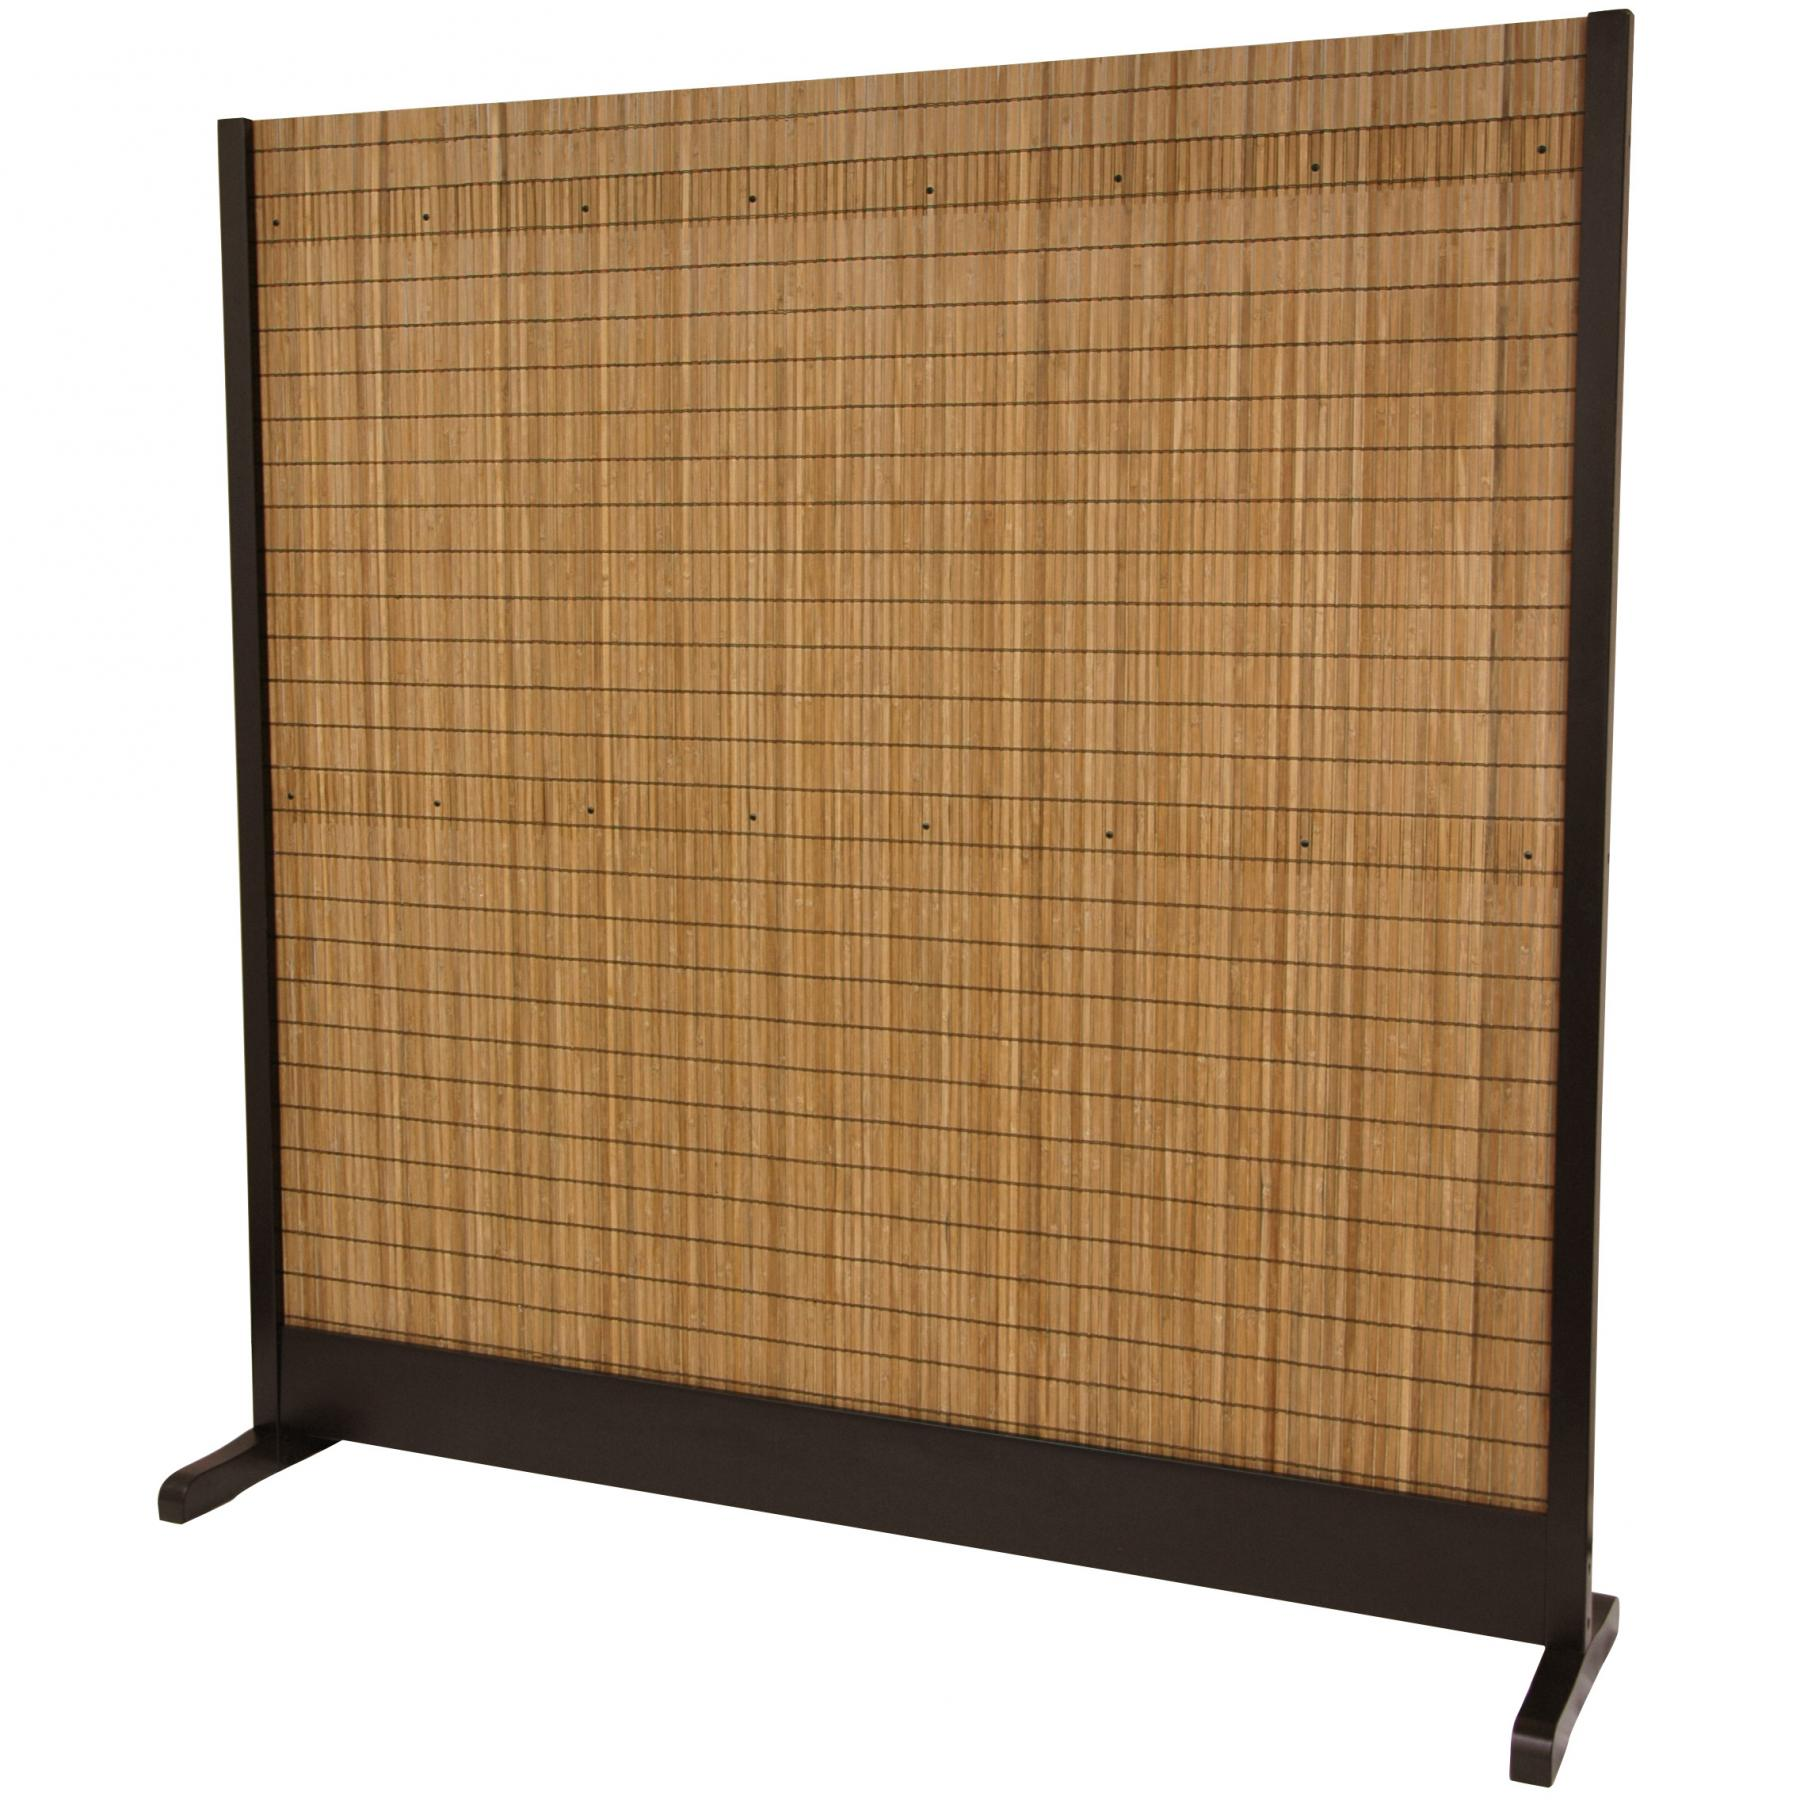 room dividers and privacy screens - over 1,500 unique styles available